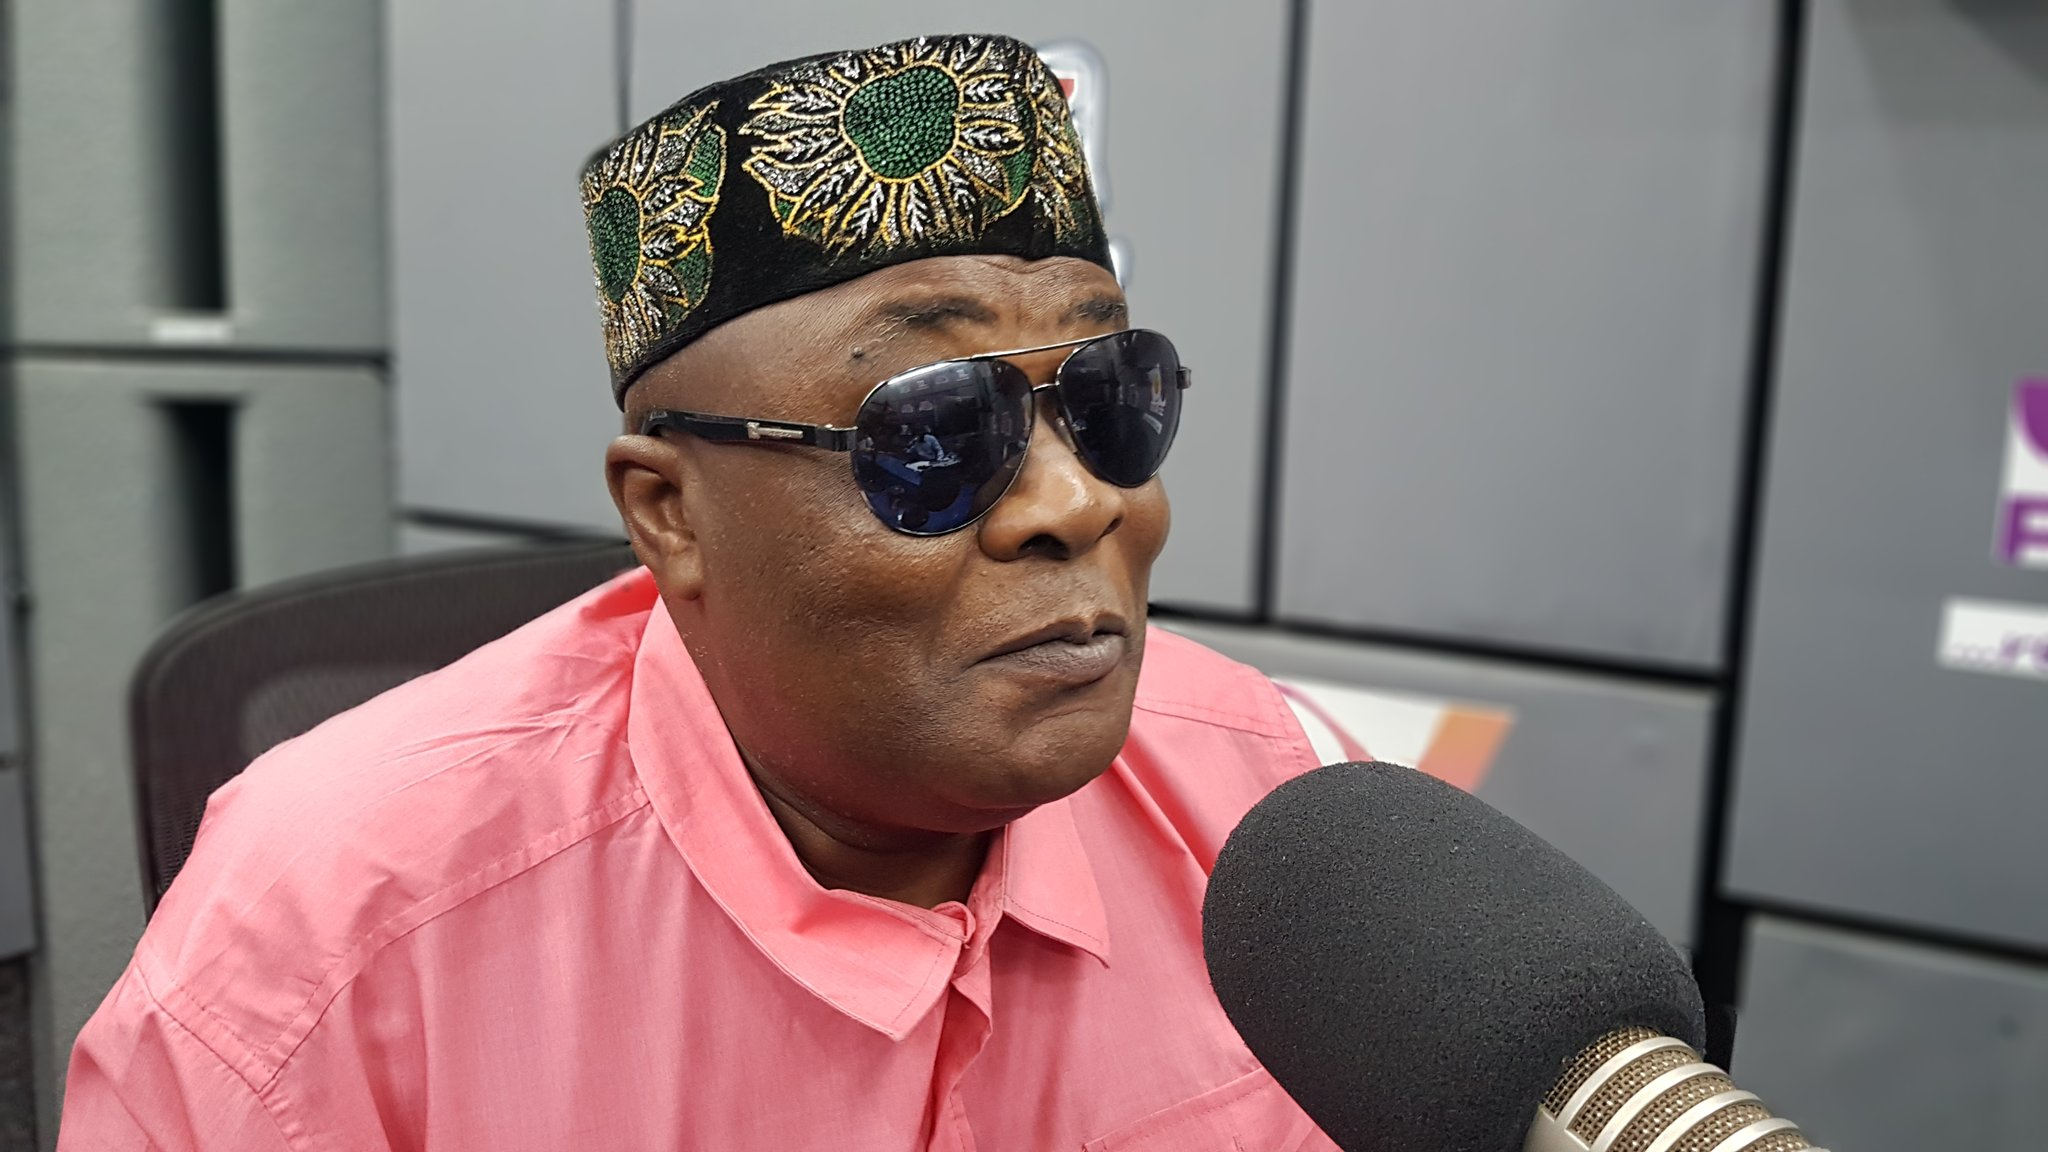 Willie Roi admits R Kelly reached out to Stonebwoy but denies blocking the chance as Mr Logic claimed